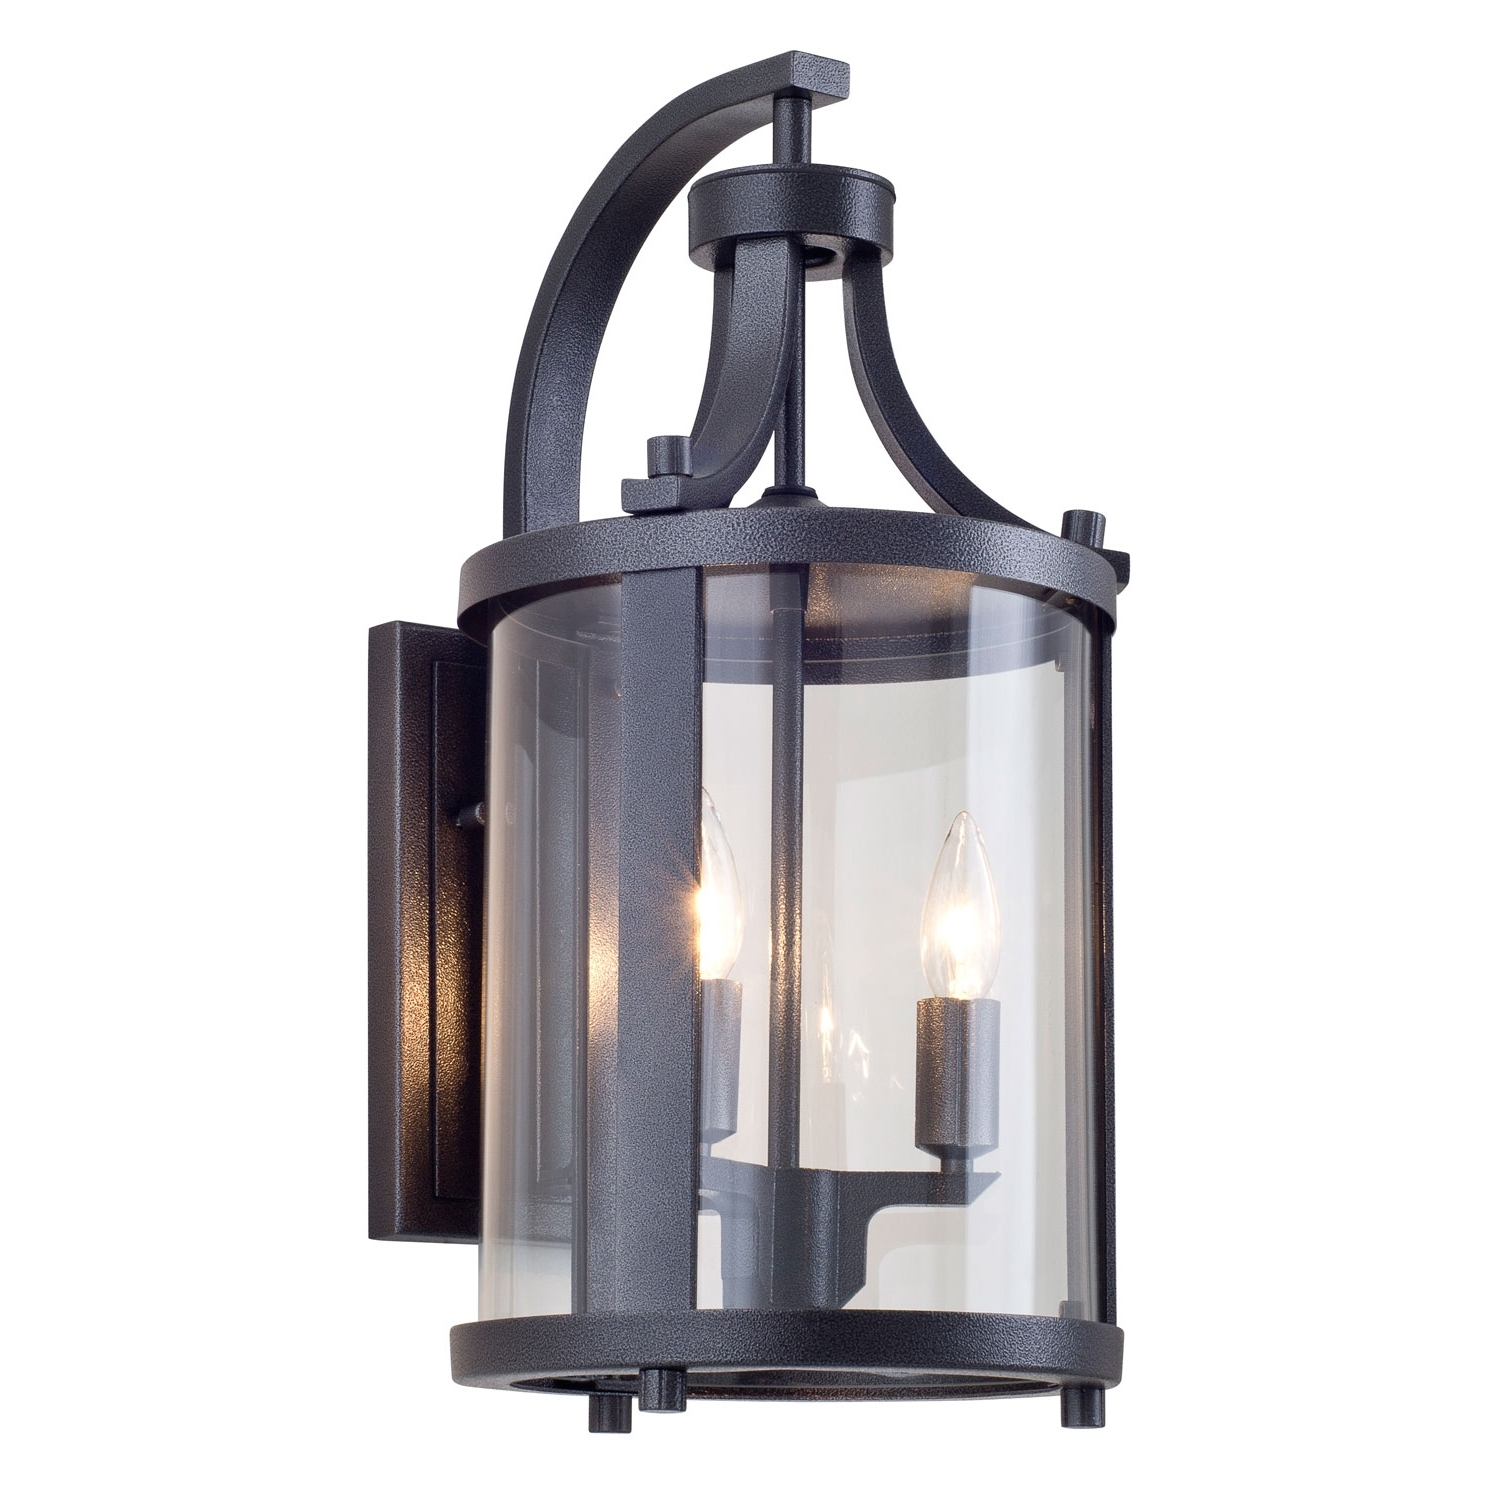 Most Recent Light : Exterior Wall Mount Light Niagara Outdoor Hammered Black Two Within Dusk To Dawn Outdoor Wall Mounted Lighting (View 15 of 20)